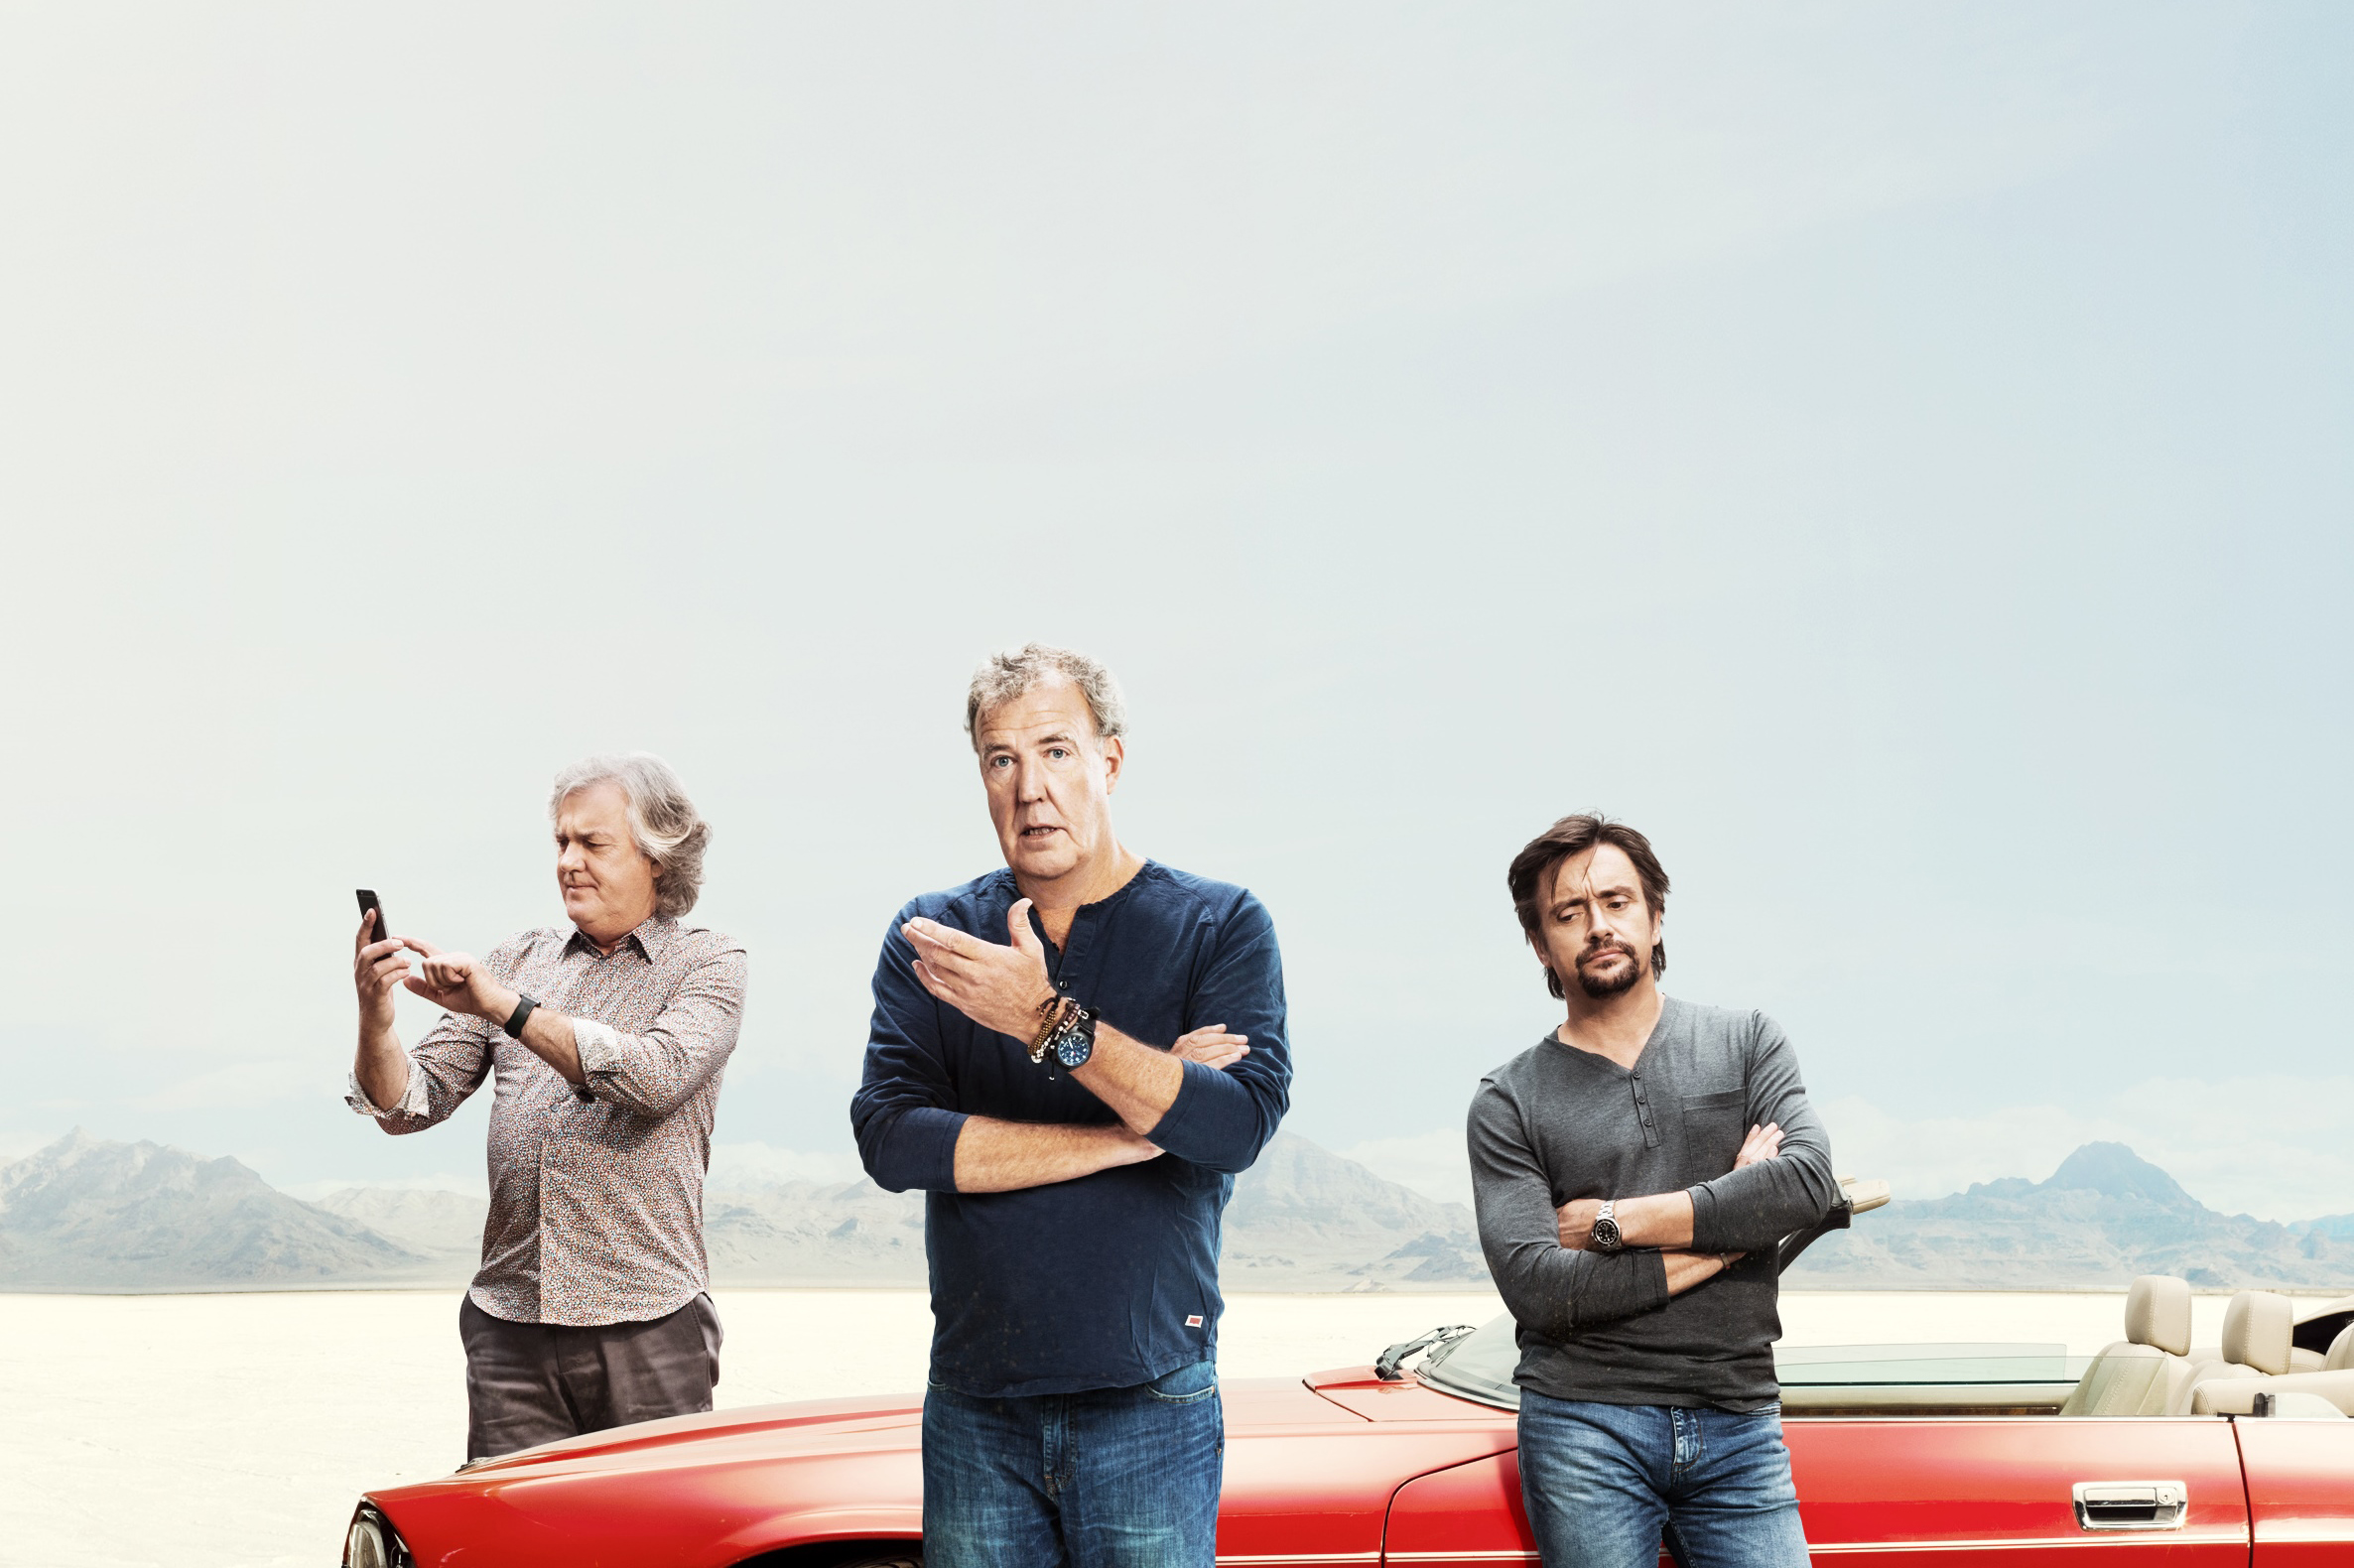 How to apply for audience tickets for The Grand Tour season 3